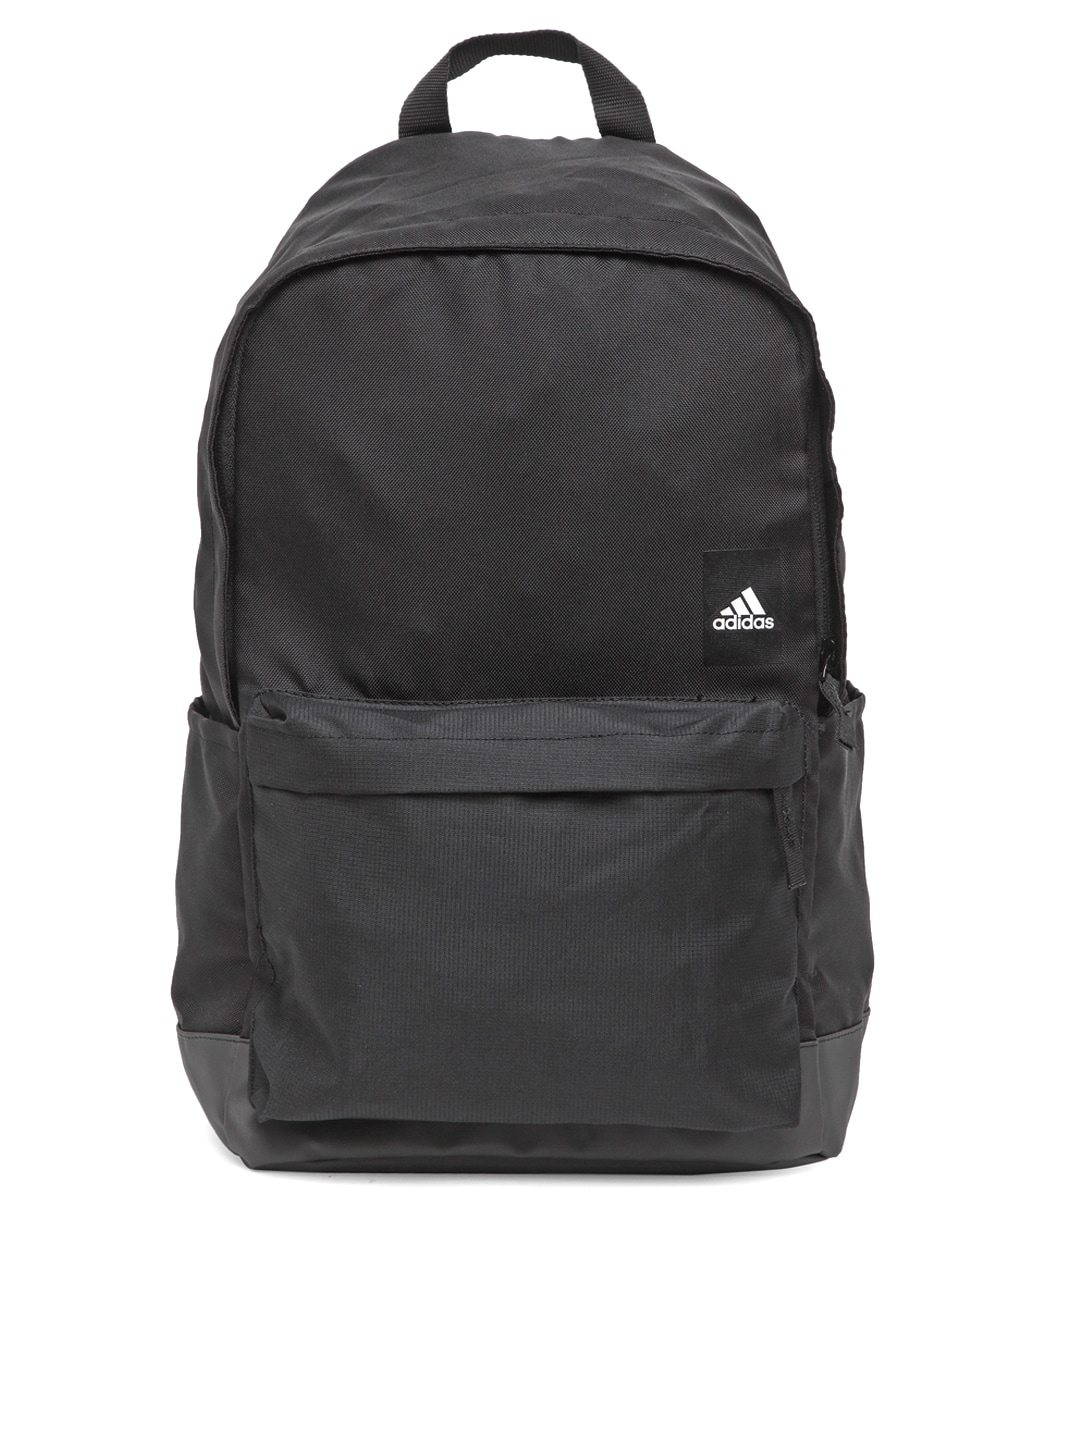 83d7eaef98 Adidas Accessories Backpacks Laptop Bags - Buy Adidas Accessories Backpacks  Laptop Bags online in India